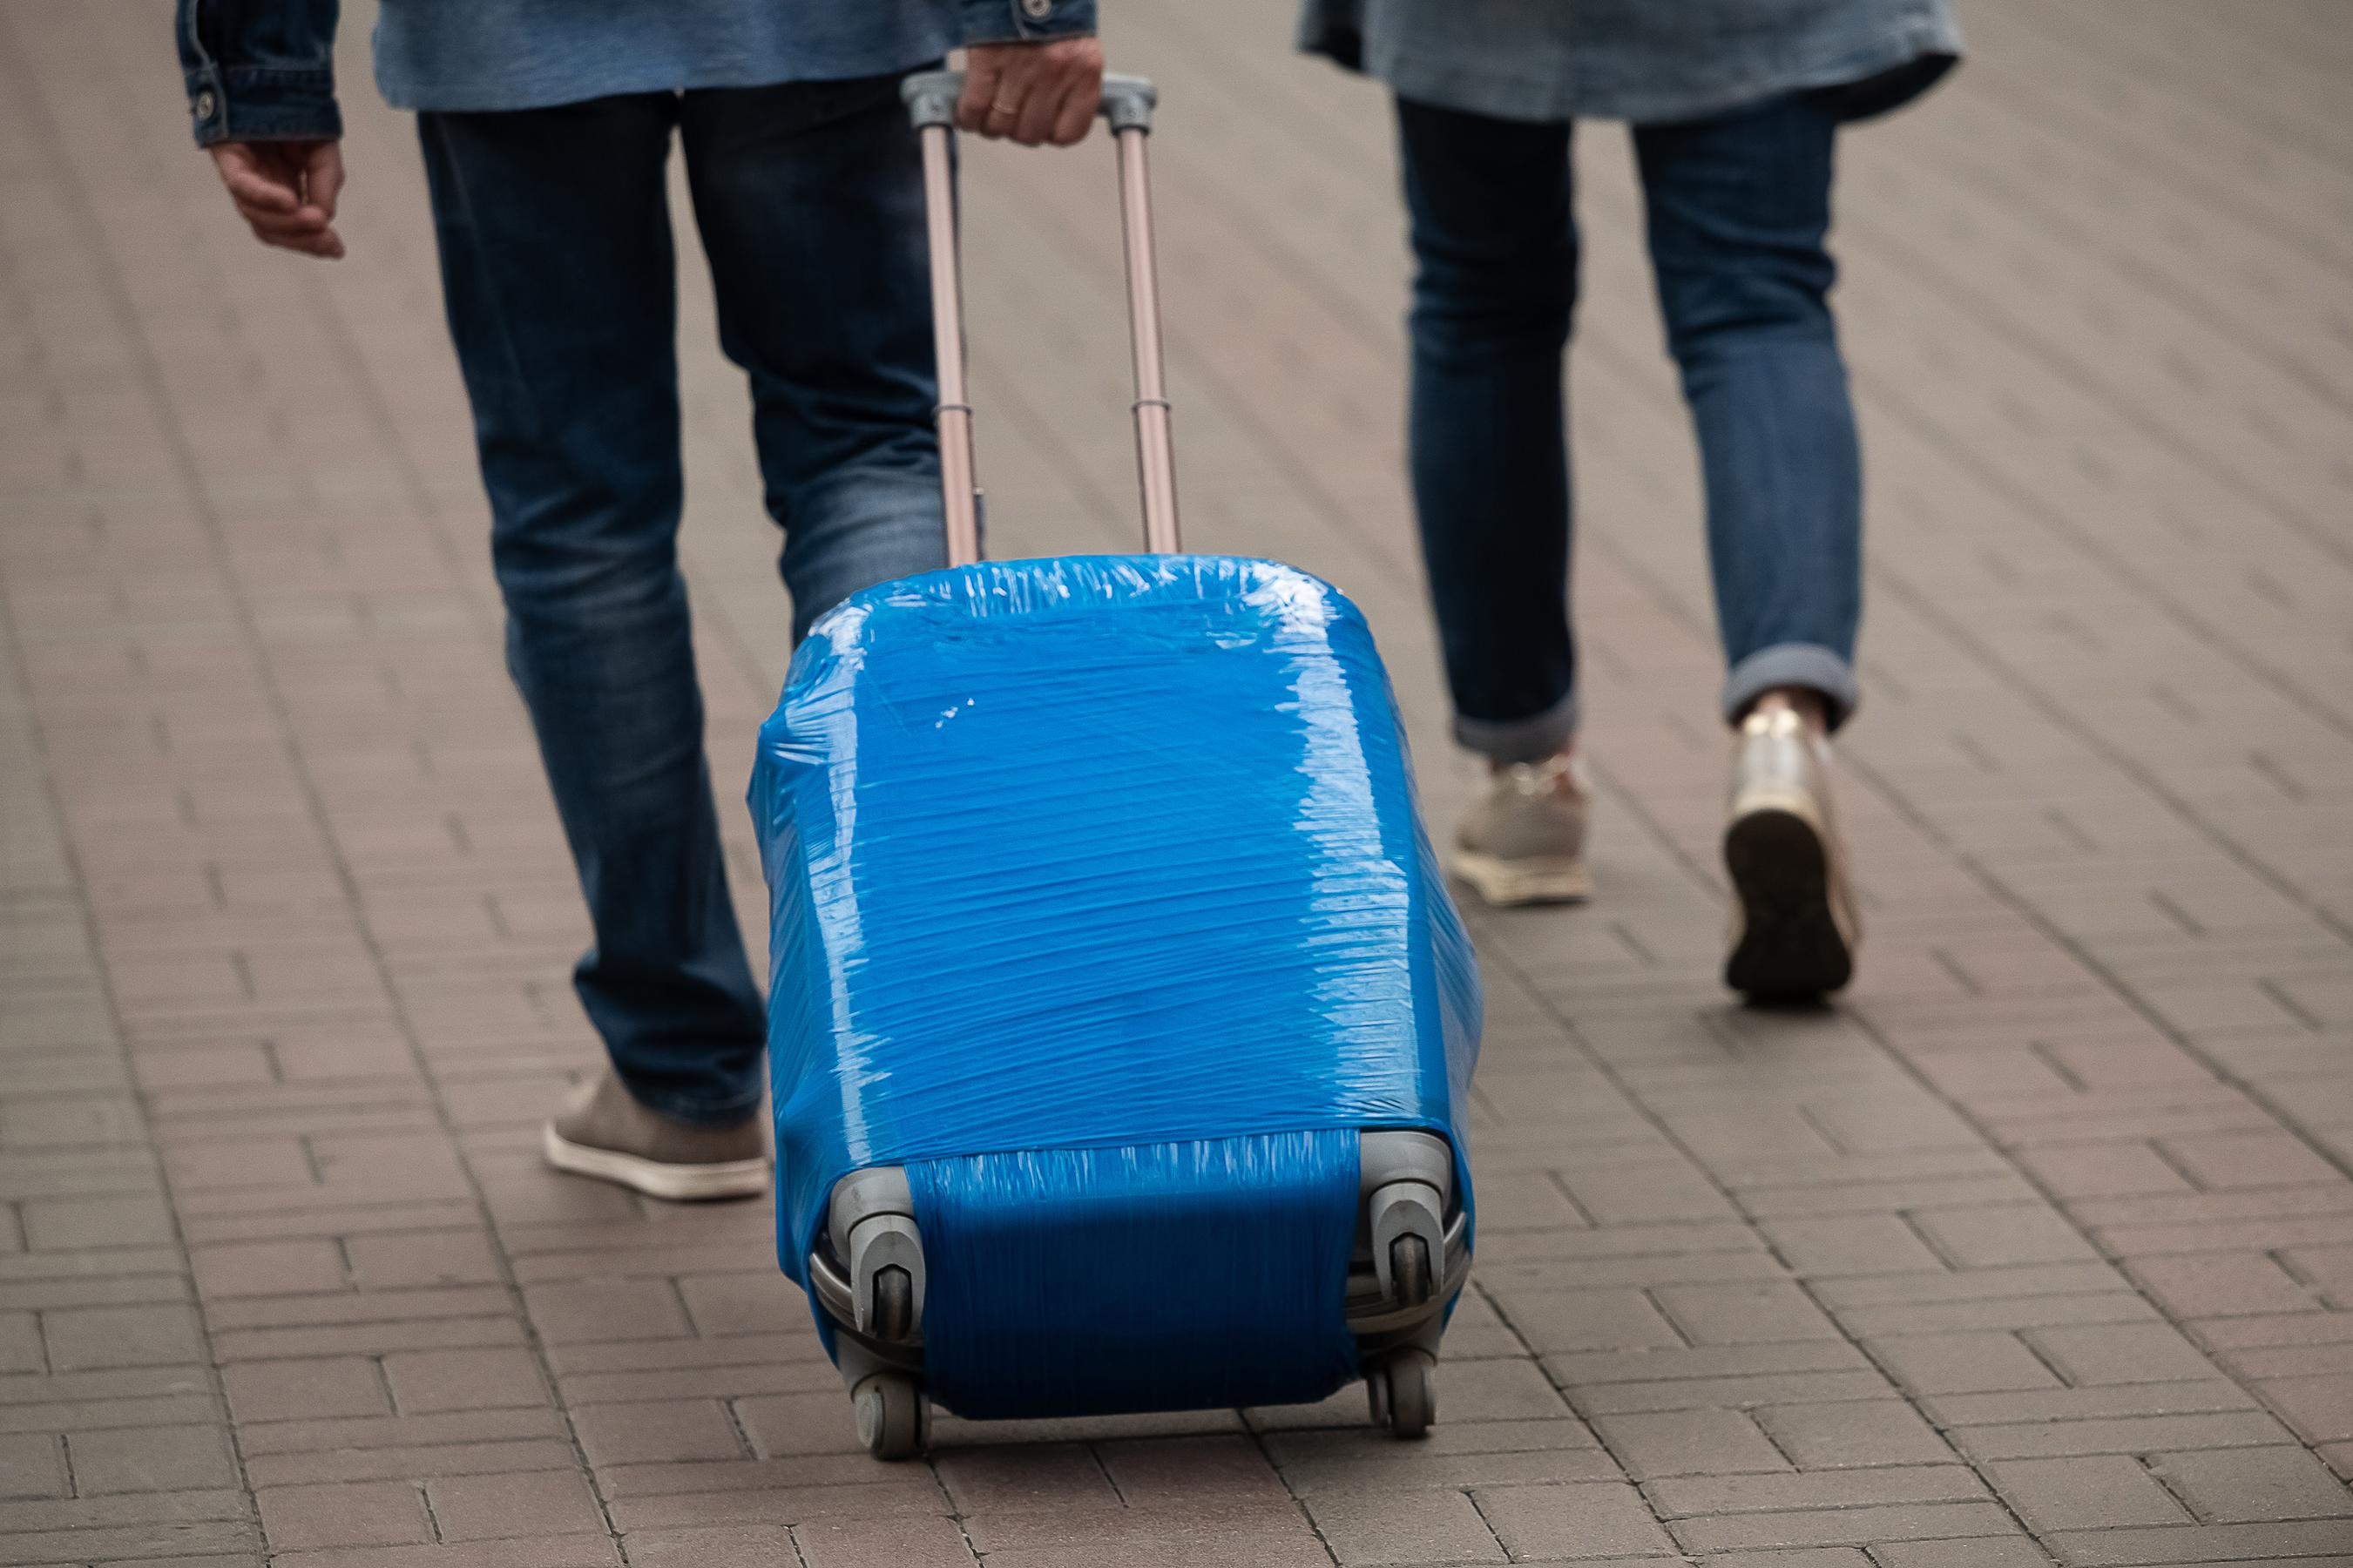 Should You Shrink or Plastic Wrap Your Checked Luggage?